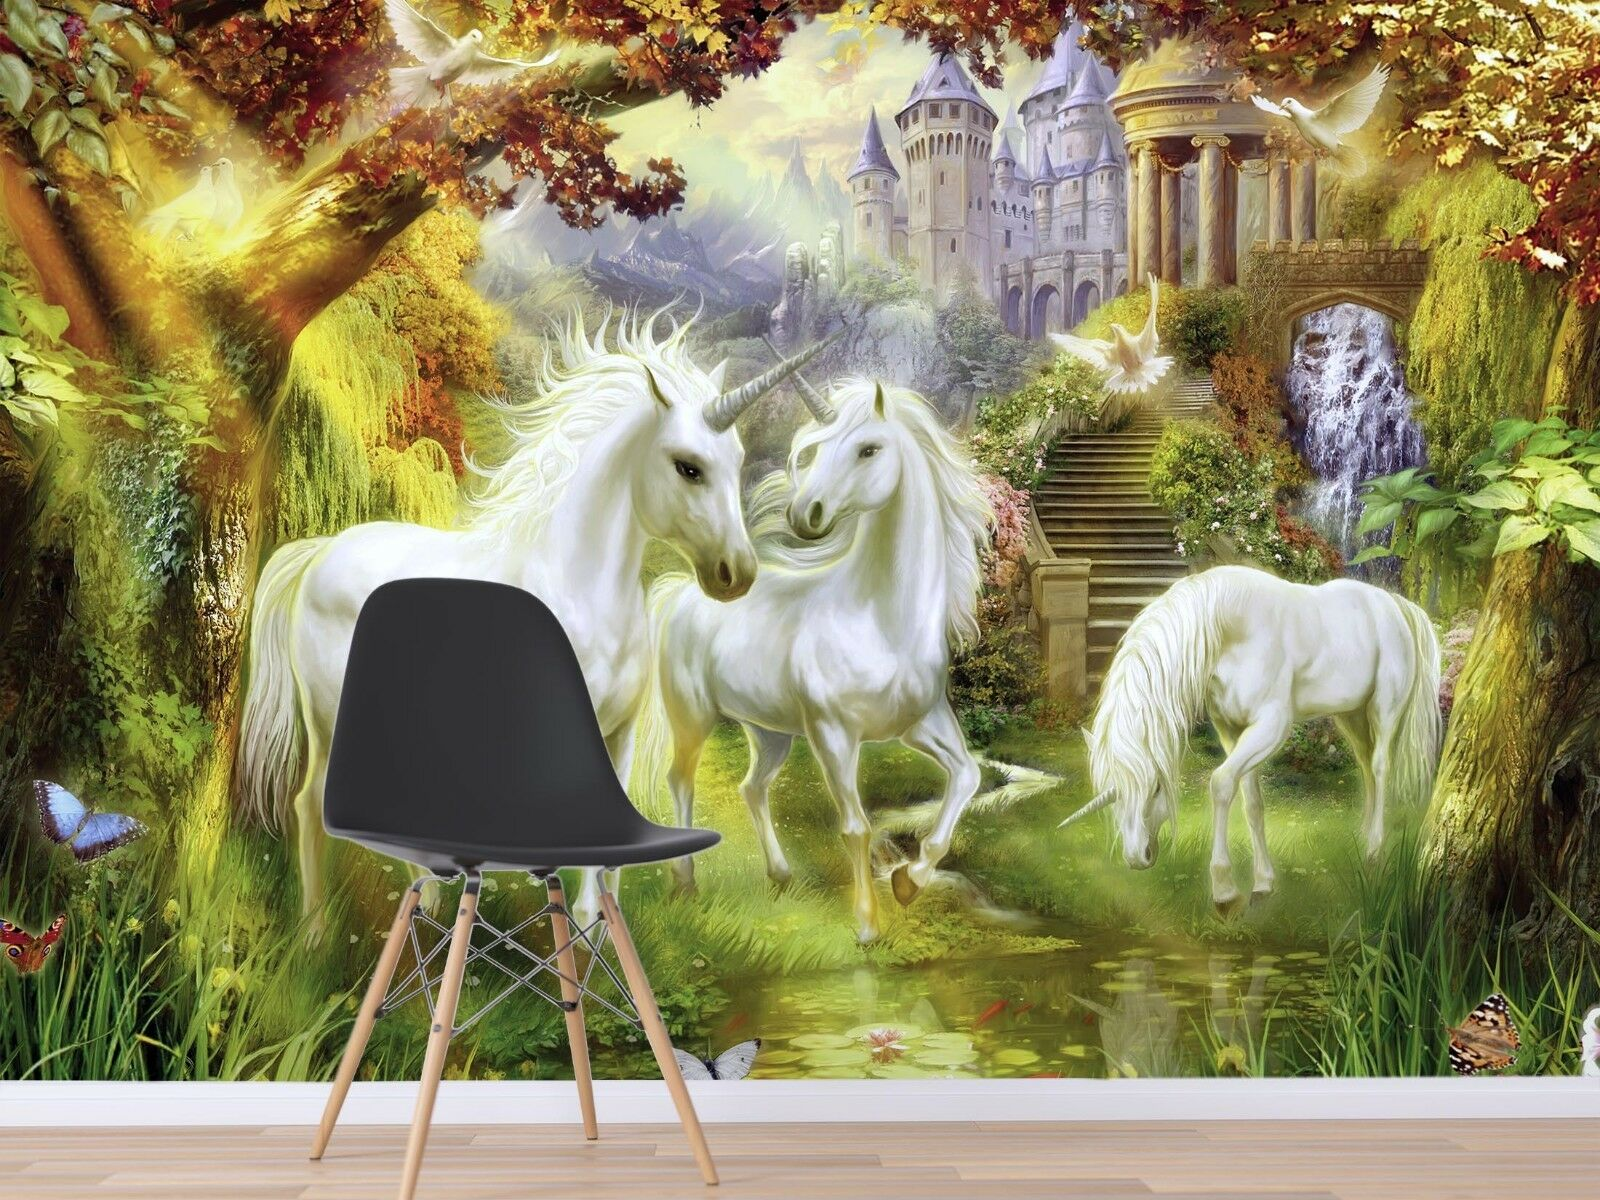 3D Wood Unicorn 85 Wall Paper Exclusive MXY Wallpaper Mural Decal Indoor Wall AJ